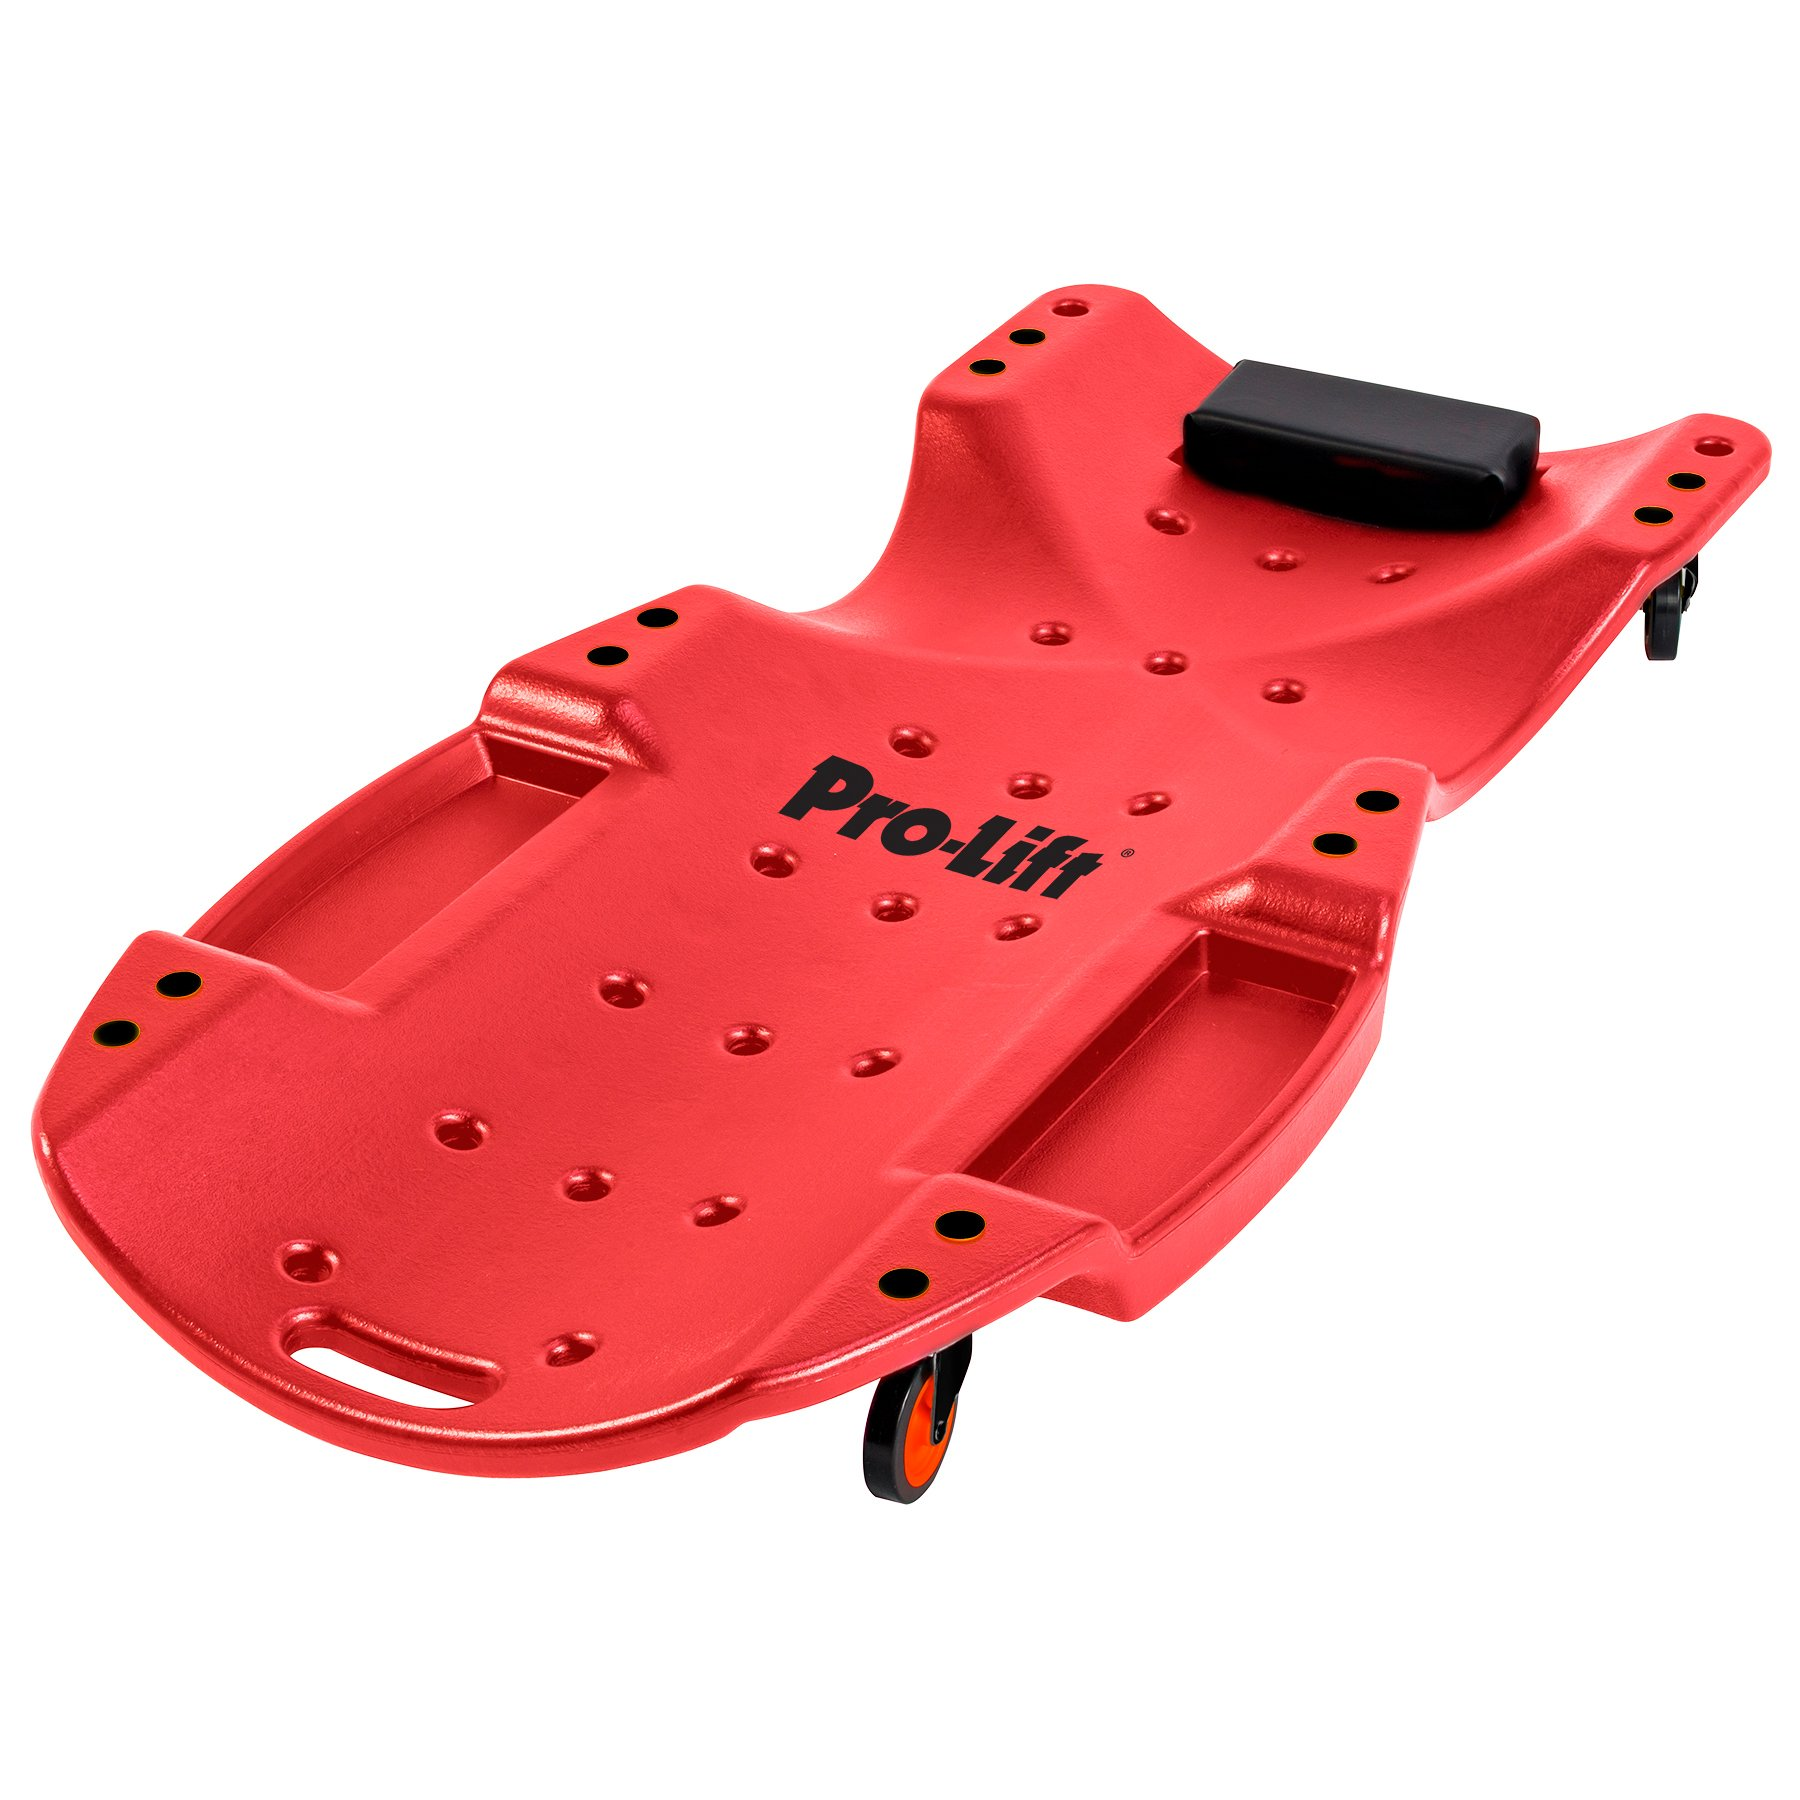 Pro Lift Mechanic Plastic Creeper 48 Inch - Blow Molded Ergonomic HDPE Body with Padded Headrest & Dual Tool Trays - 440 Lbs Capacity Red